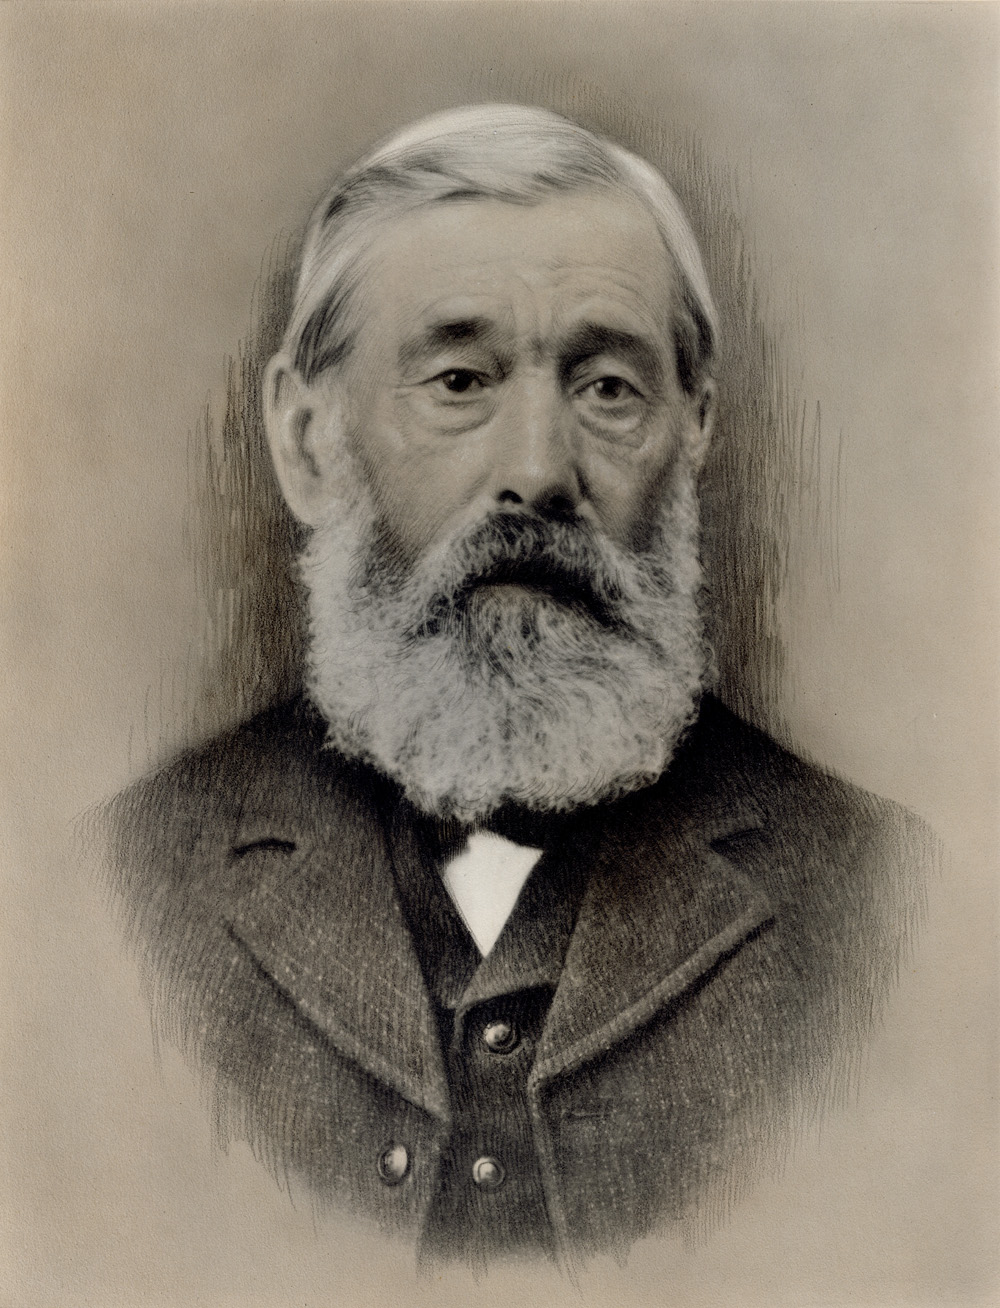 A portrait photograph of an older man, detailed with charcoal accents.